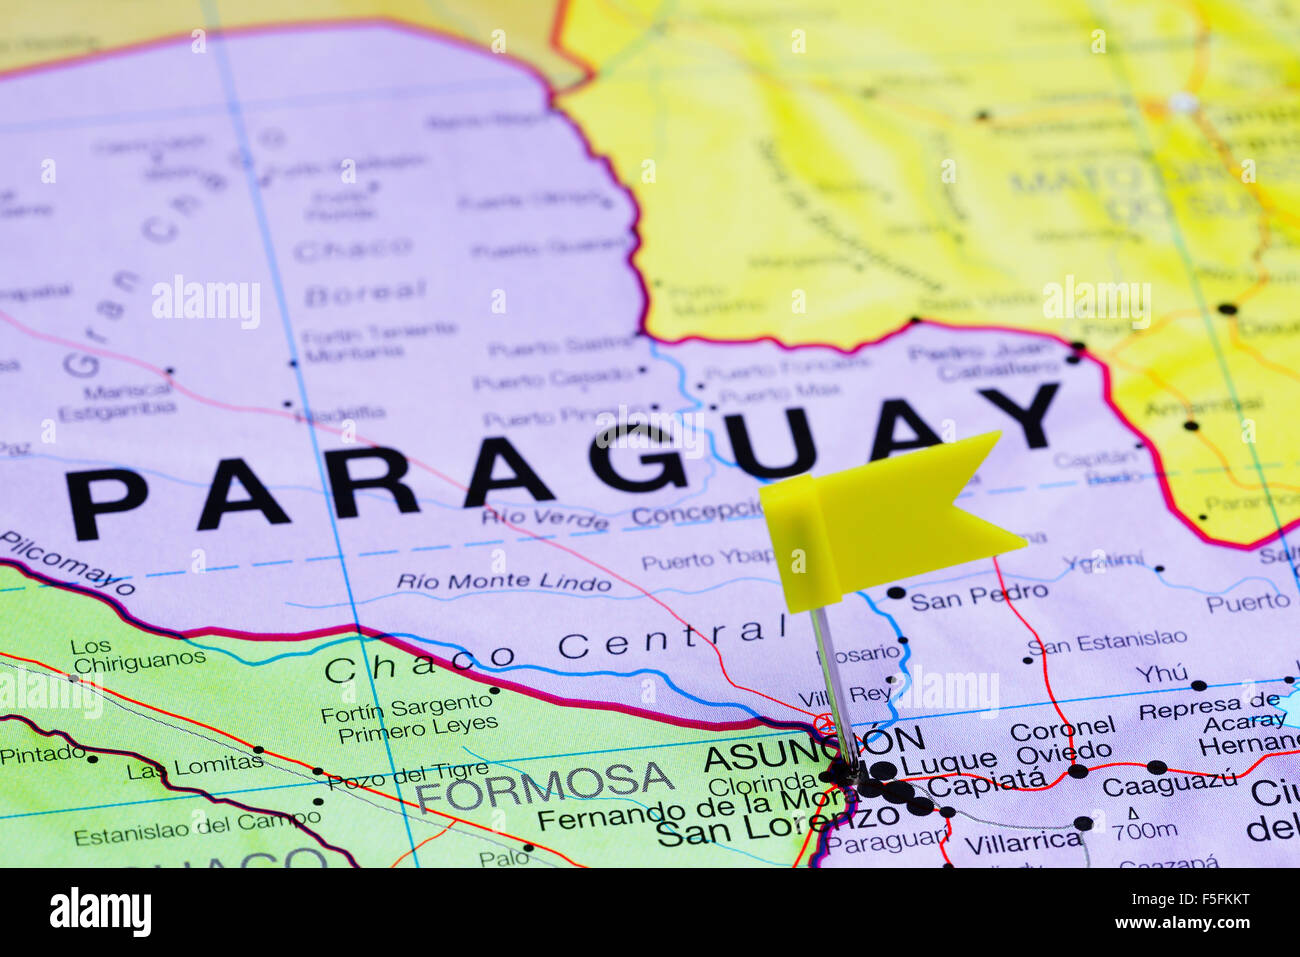 Asuncion pinned on a map of America Stock Photo Royalty Free Image